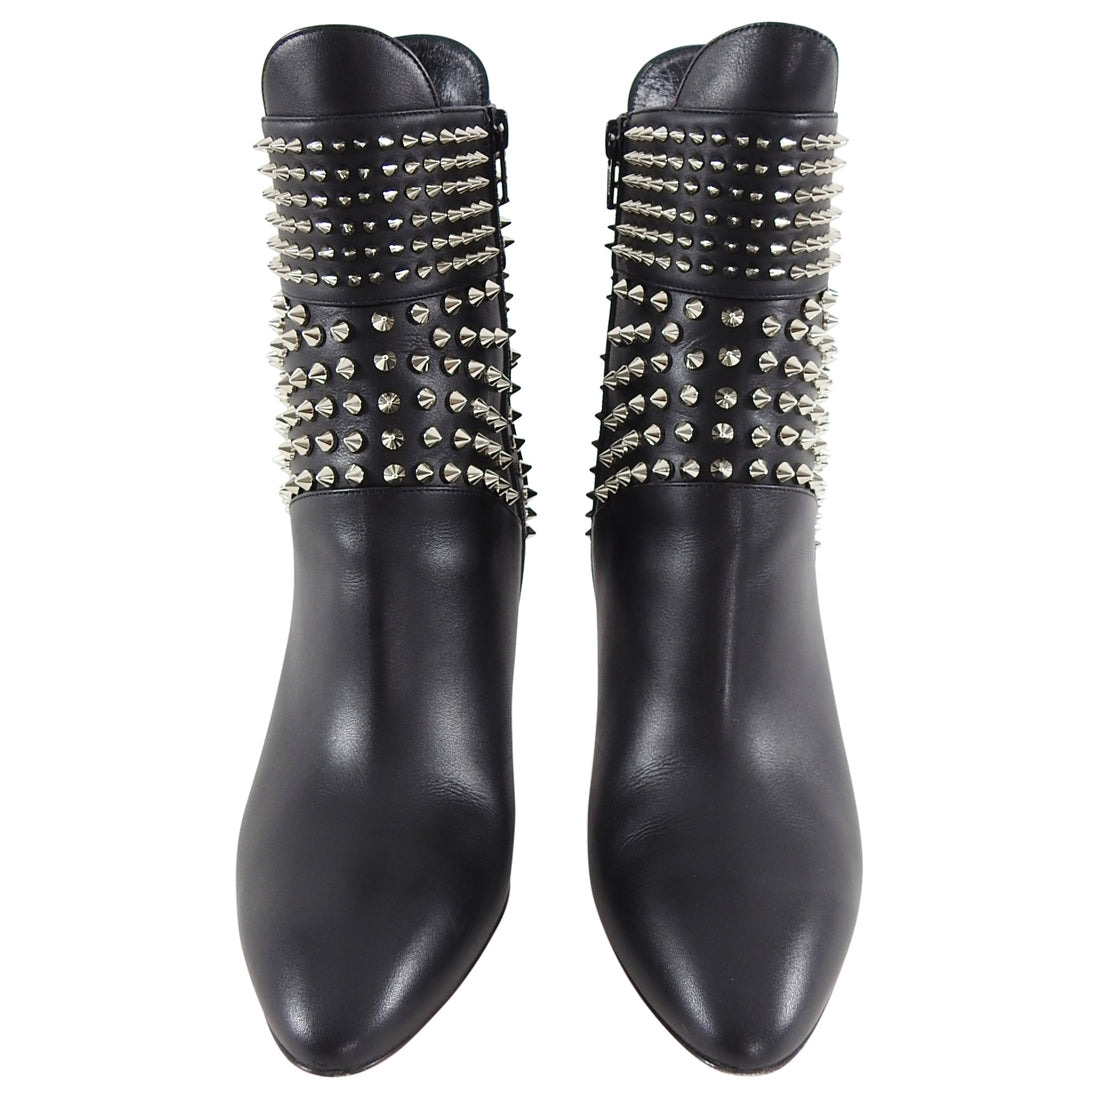 Louboutin Hongo Stud Black Leather Ankle Boots - 40